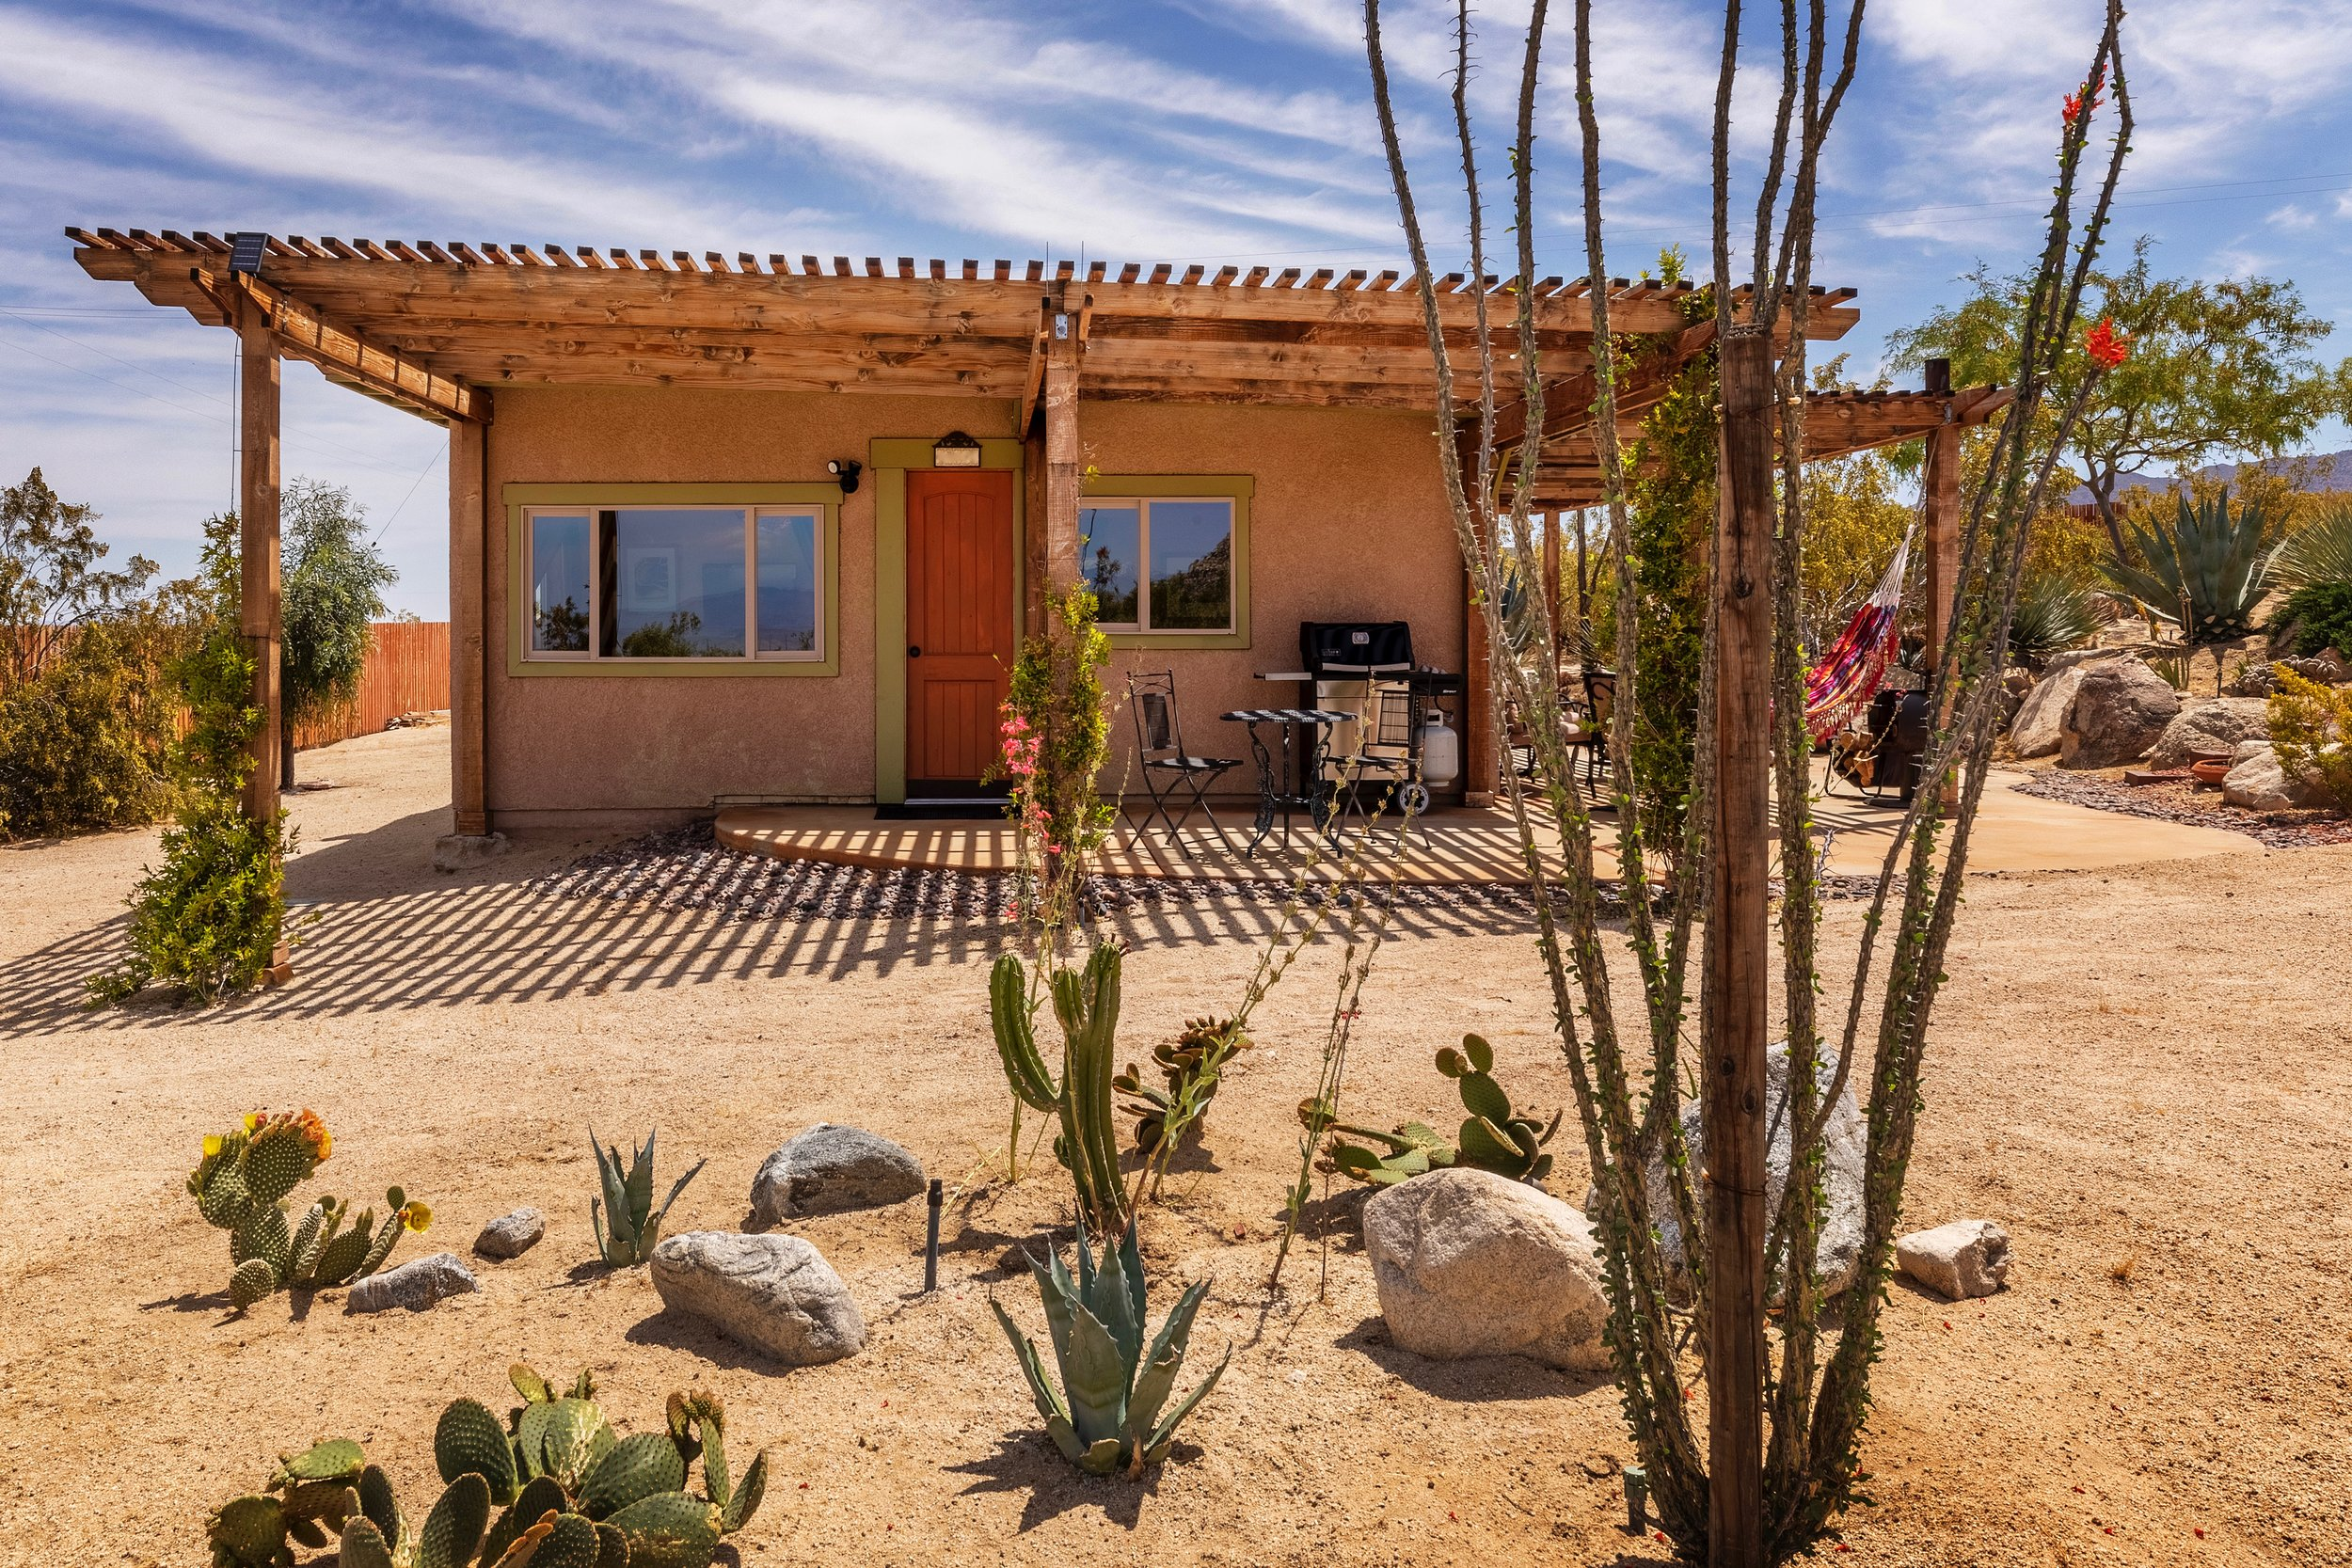 sullivan cabin - joshua tree, CA OFFERED BY RENT29.COM